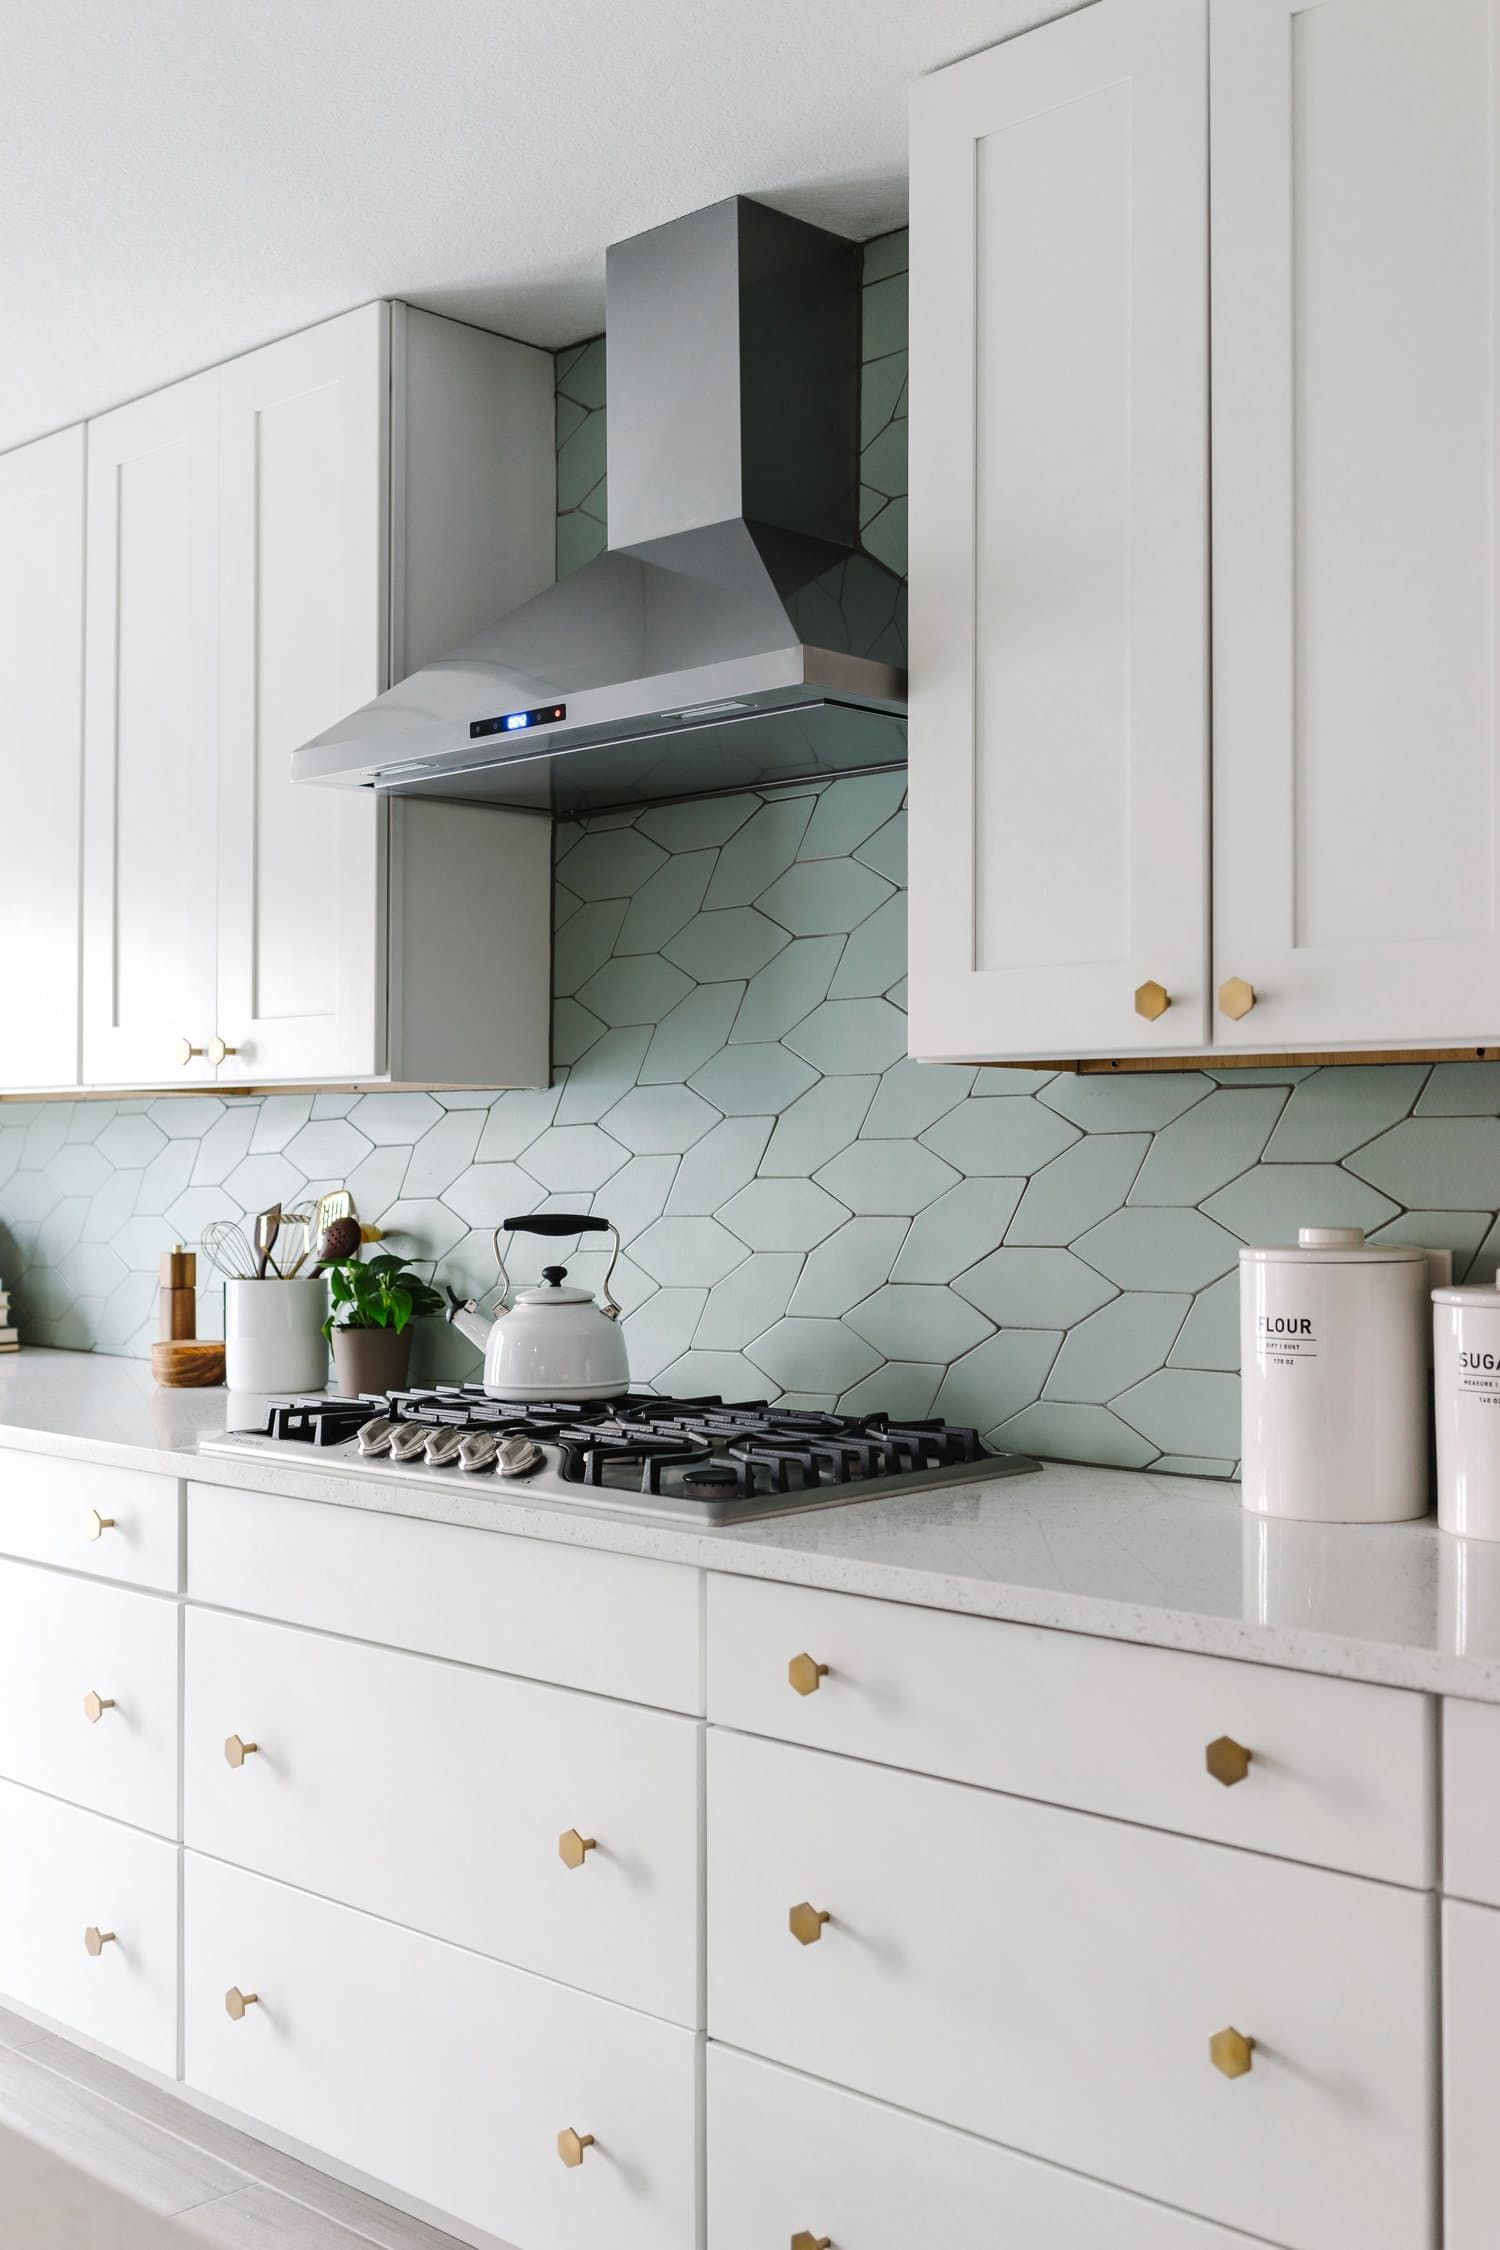 10 Badass Tile Shapes You Didn T Know Existed Kitchen Backsplash Designs Home Kitchens White Kitchen Backsplash Best tiles for kitchen backsplashes